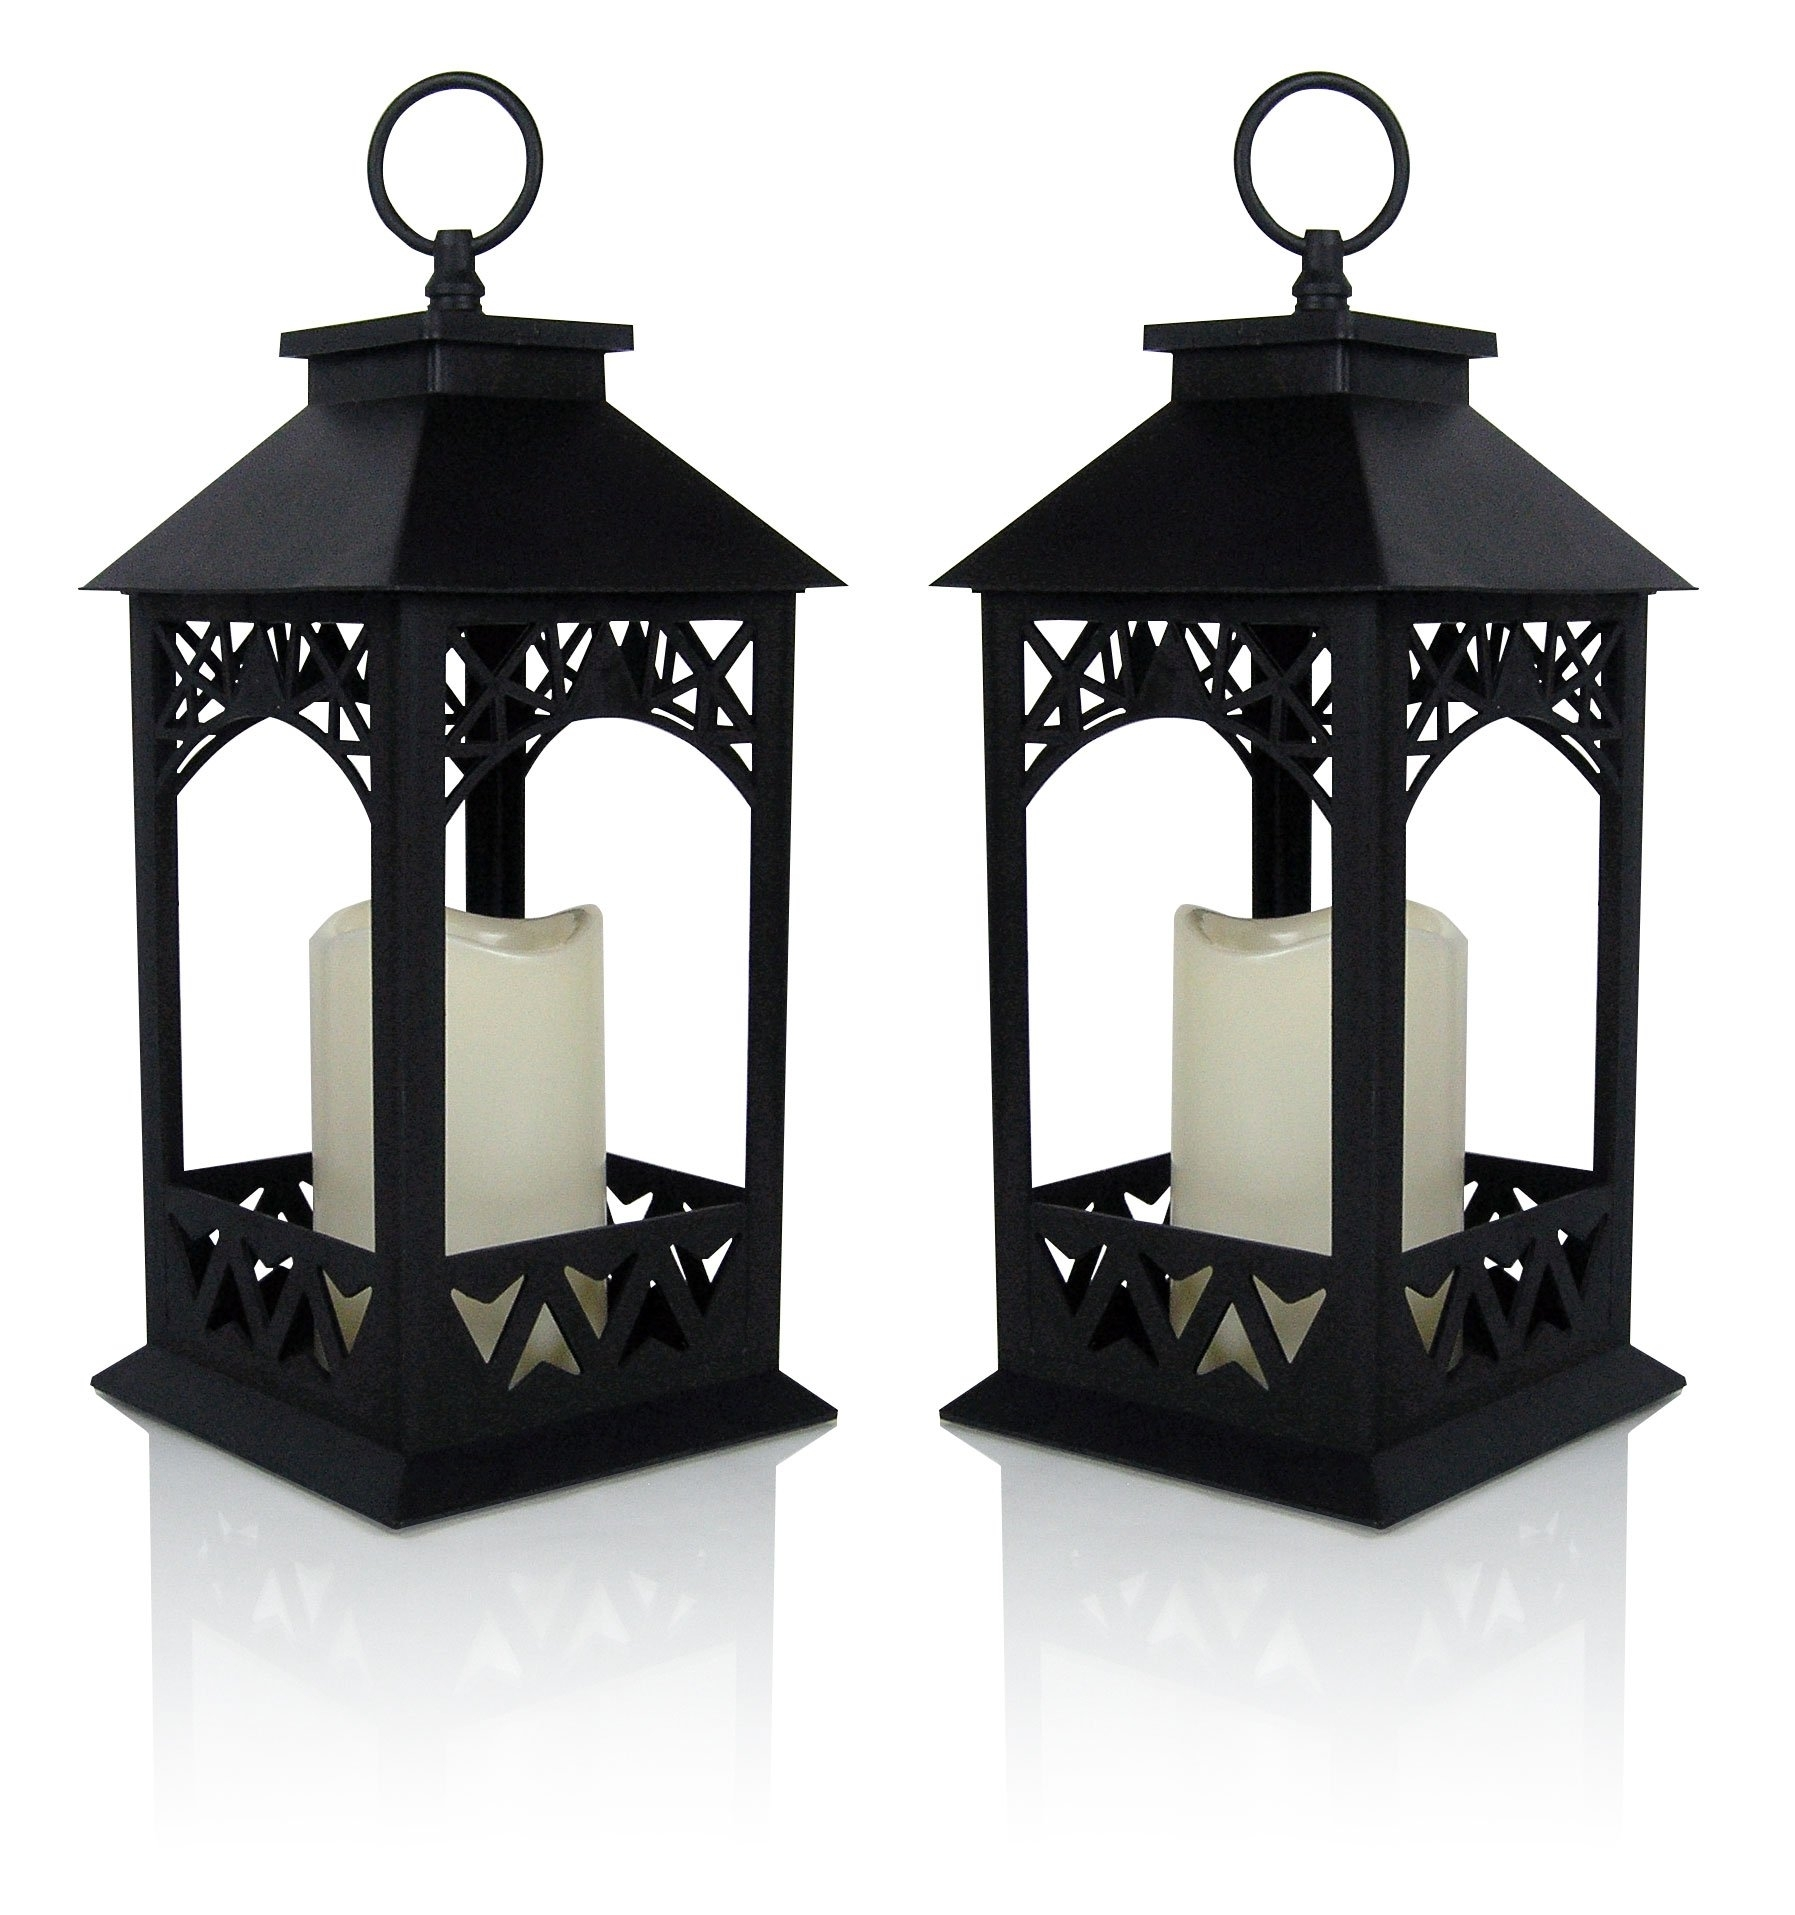 Cheap Outdoor Lanterns Candle, Find Outdoor Lanterns Candle Deals On throughout Outdoor Lanterns With Flameless Candles (Image 6 of 20)